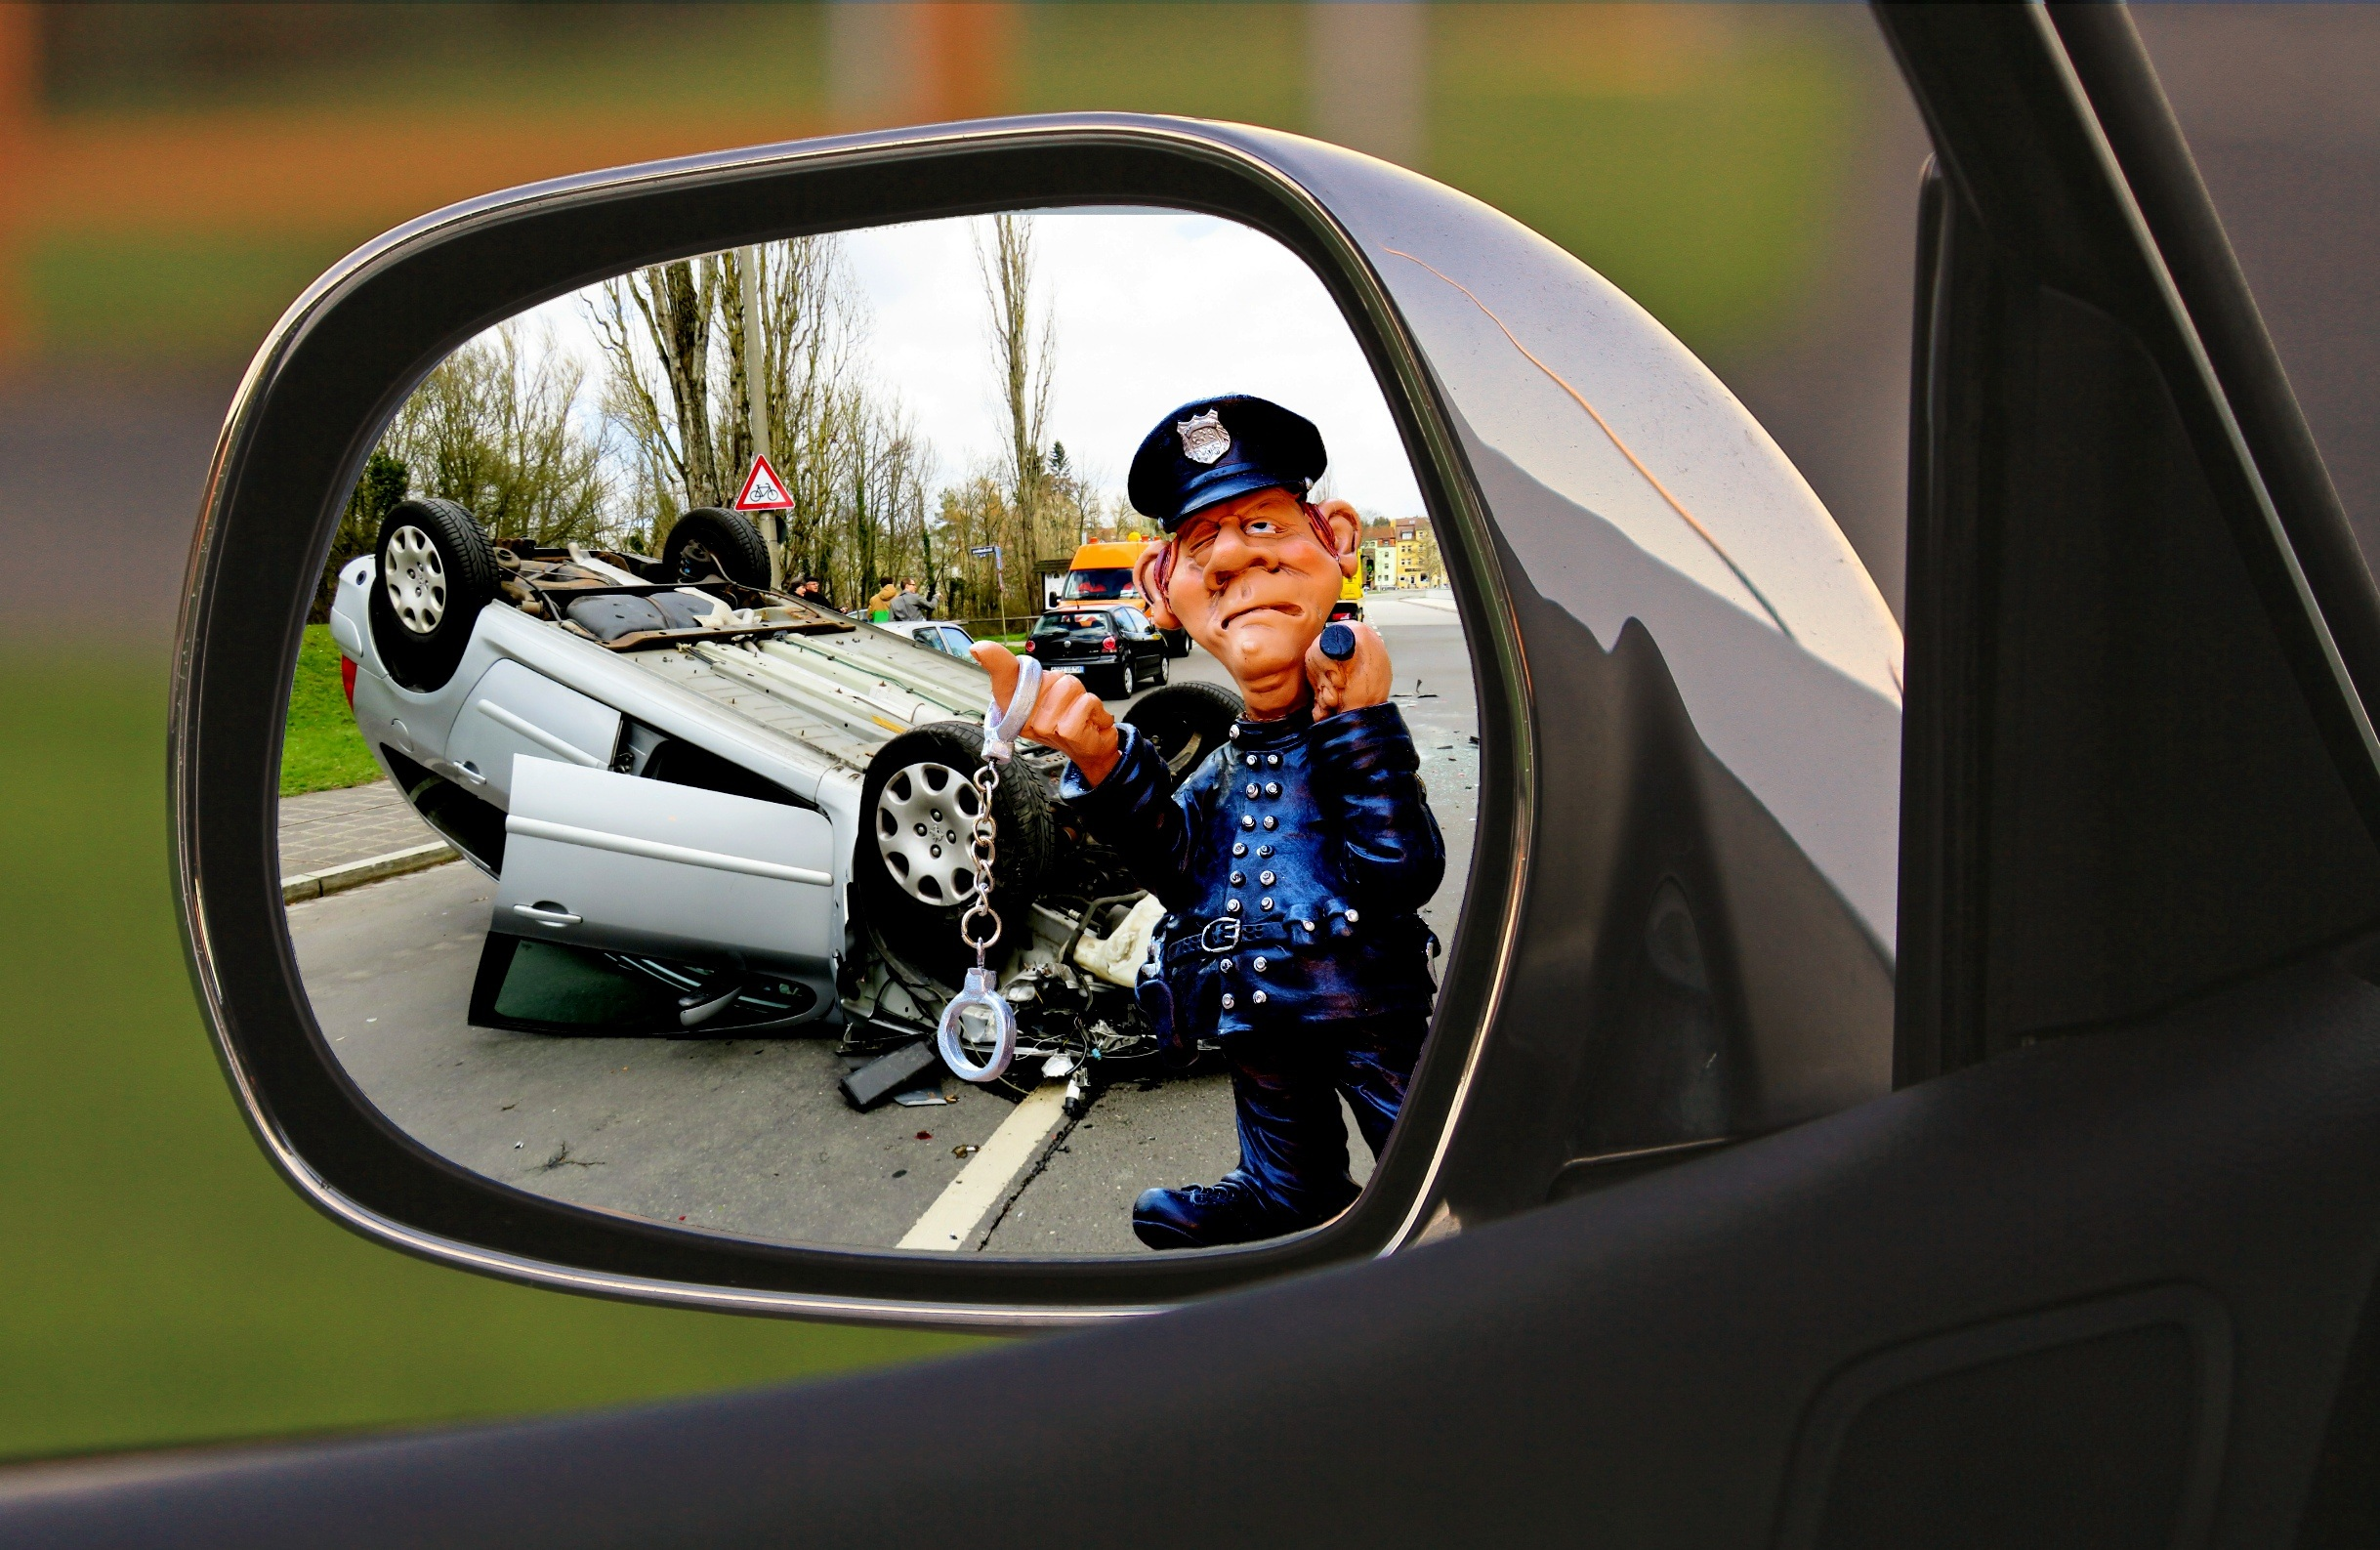 accident-hit-and-run-police-crime-163773.jpeg